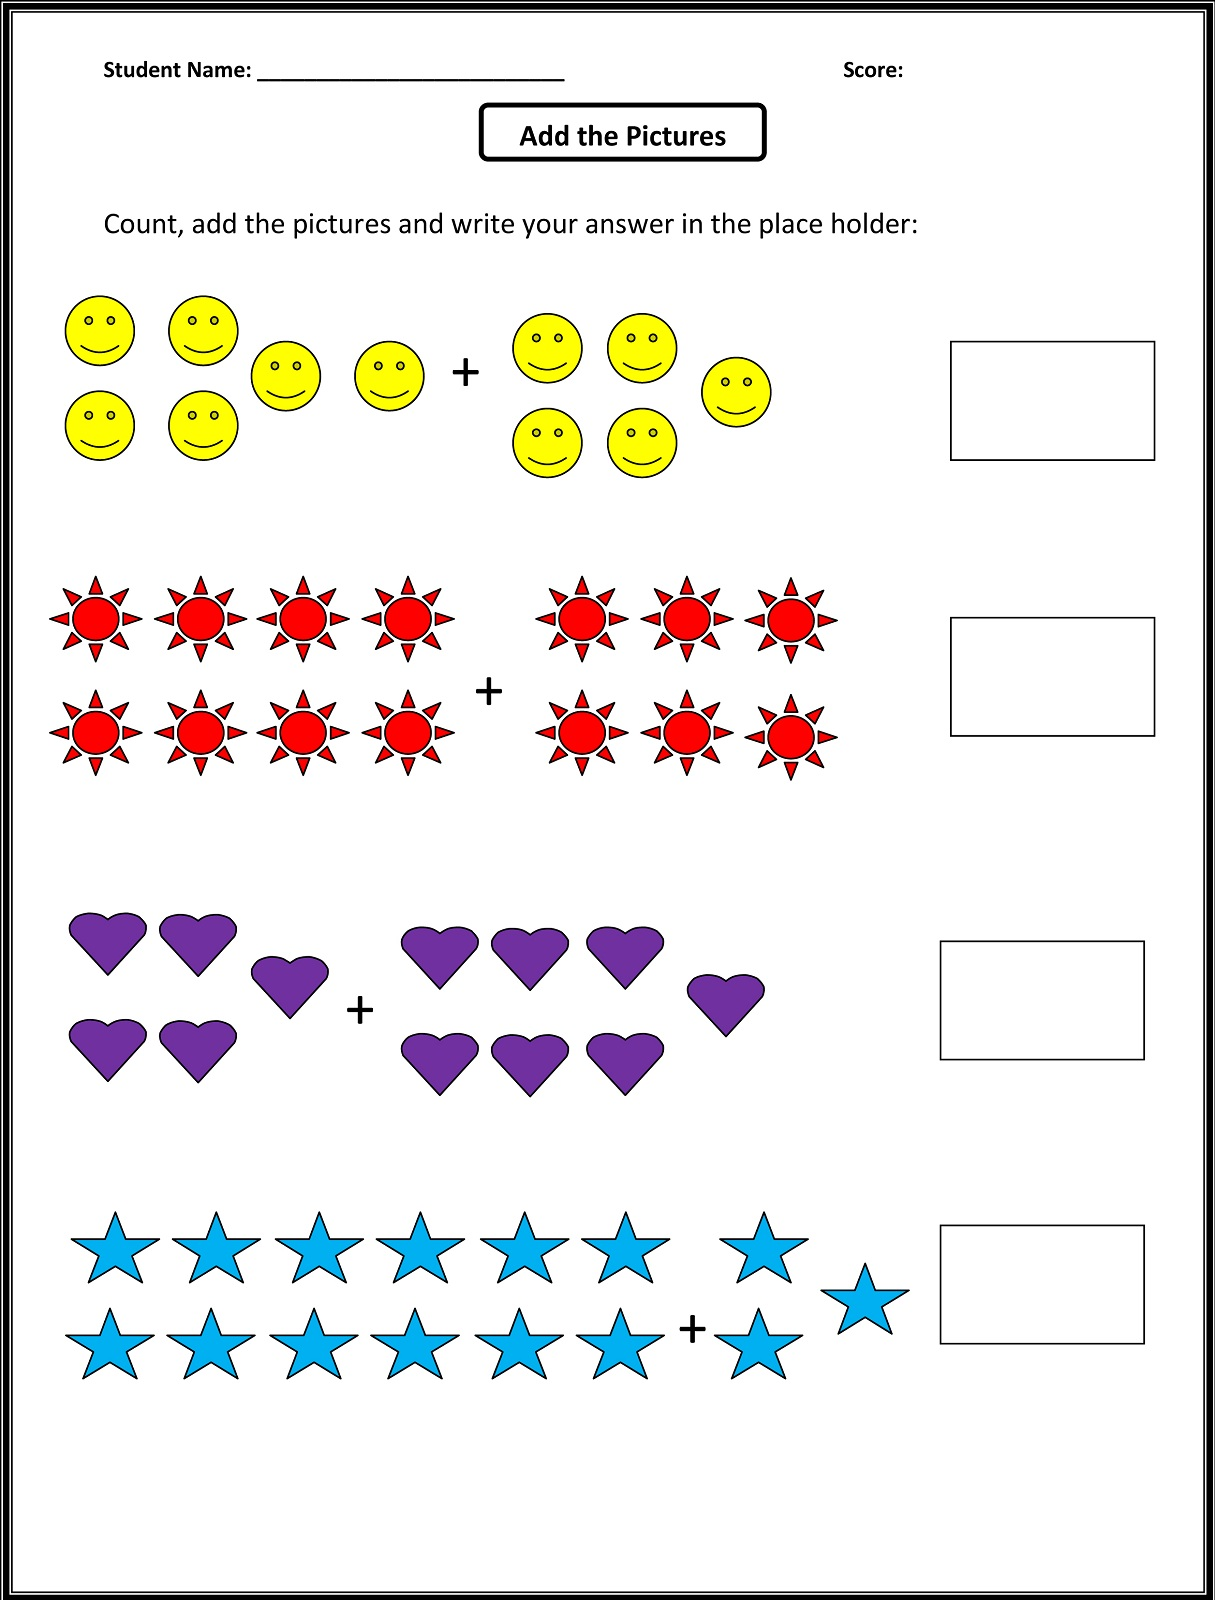 Worksheets for 1st Grade Math – 1st Grade Math Worksheets